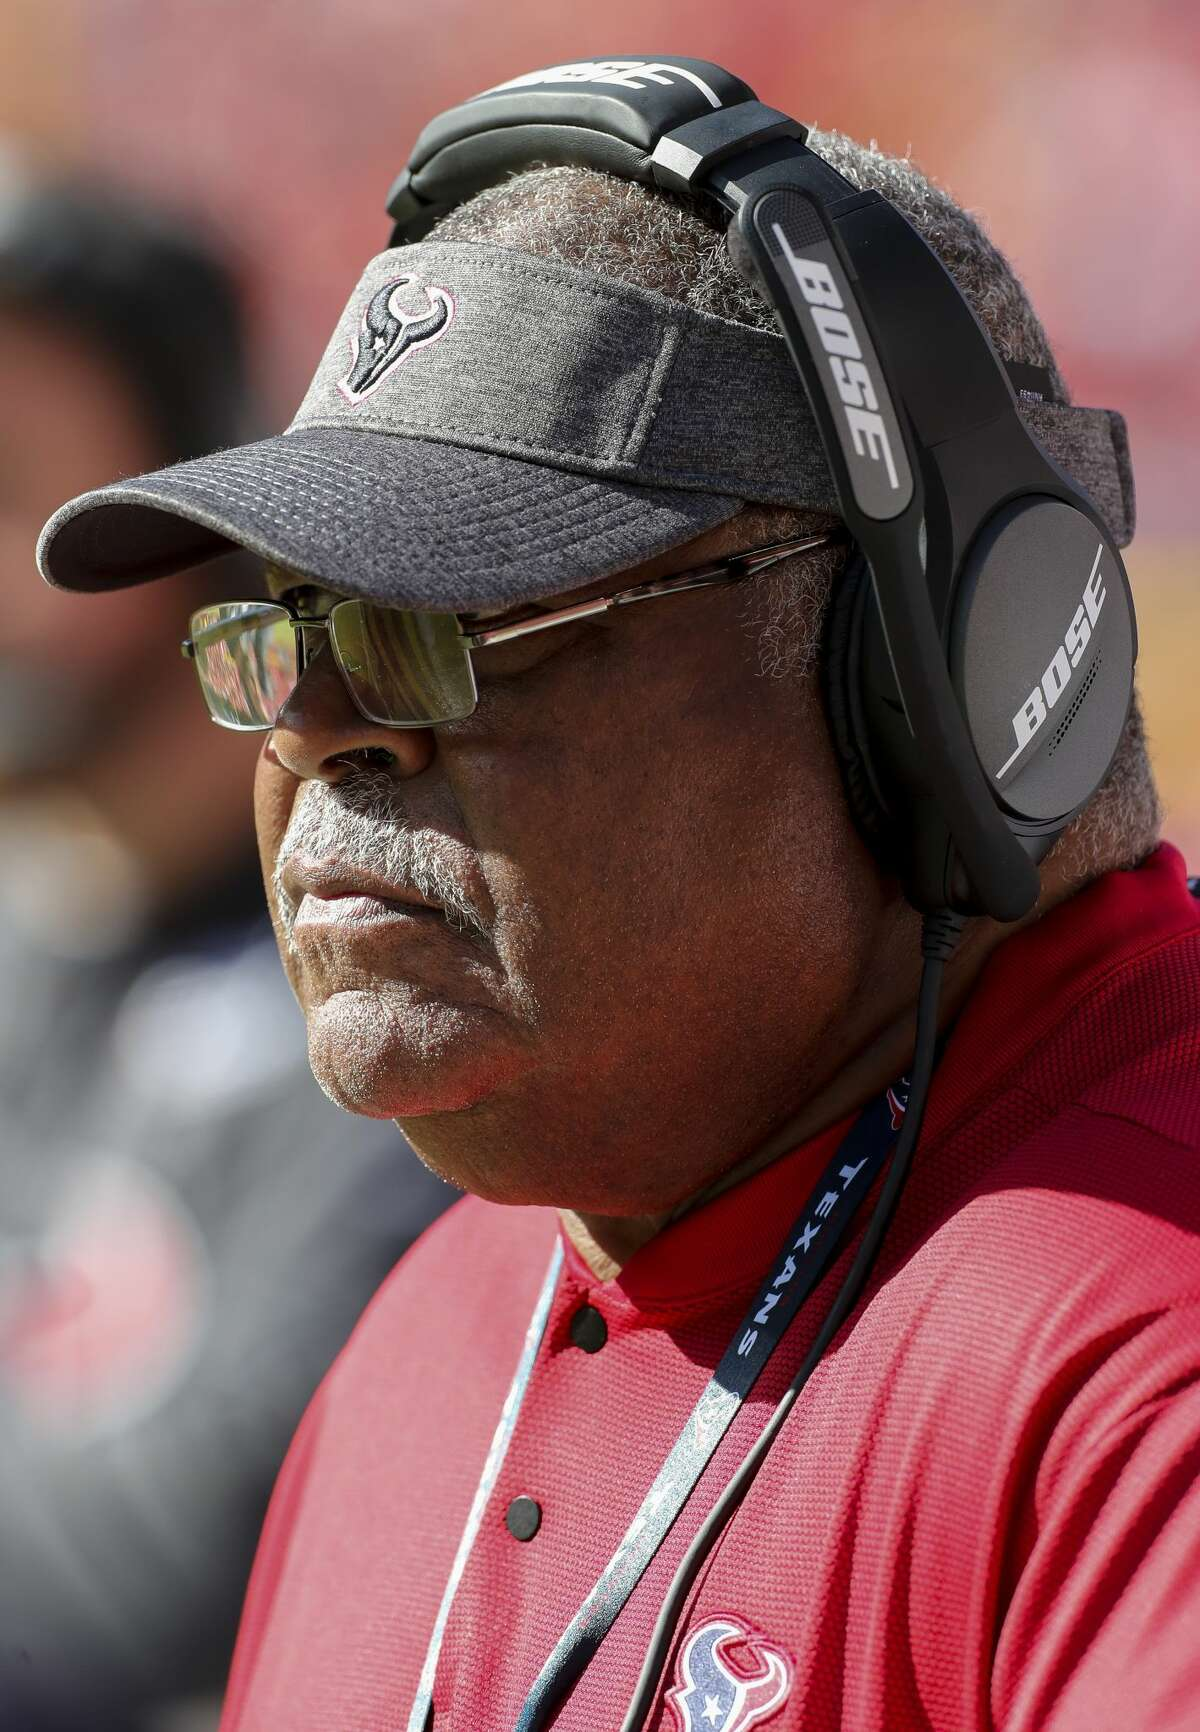 Houston Texans defensive coordinator Romeo Crennel looks to the field from the sidelines during the fourth quarter of an NFL game against the Kansas City Chiefs at Arrowhead Stadium Sunday, Oct. 13, 2019, in Kansas City, Mo. The Texans won 31-24.